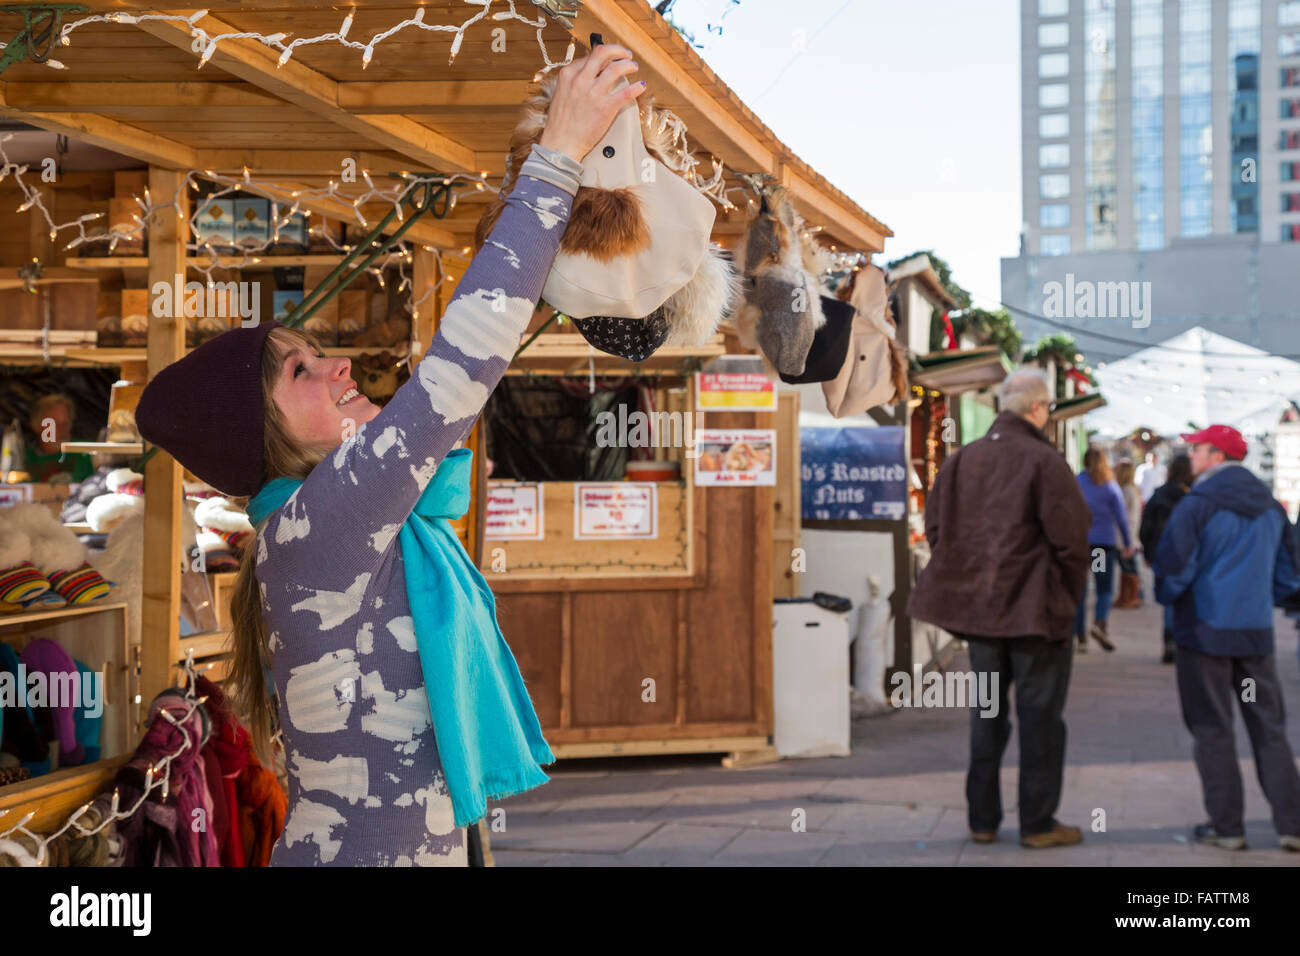 Denver, Colorado - A shopkeeper hangs up merchandise at the Denver Christkindl Market, a traditional German Christmas - Stock Image